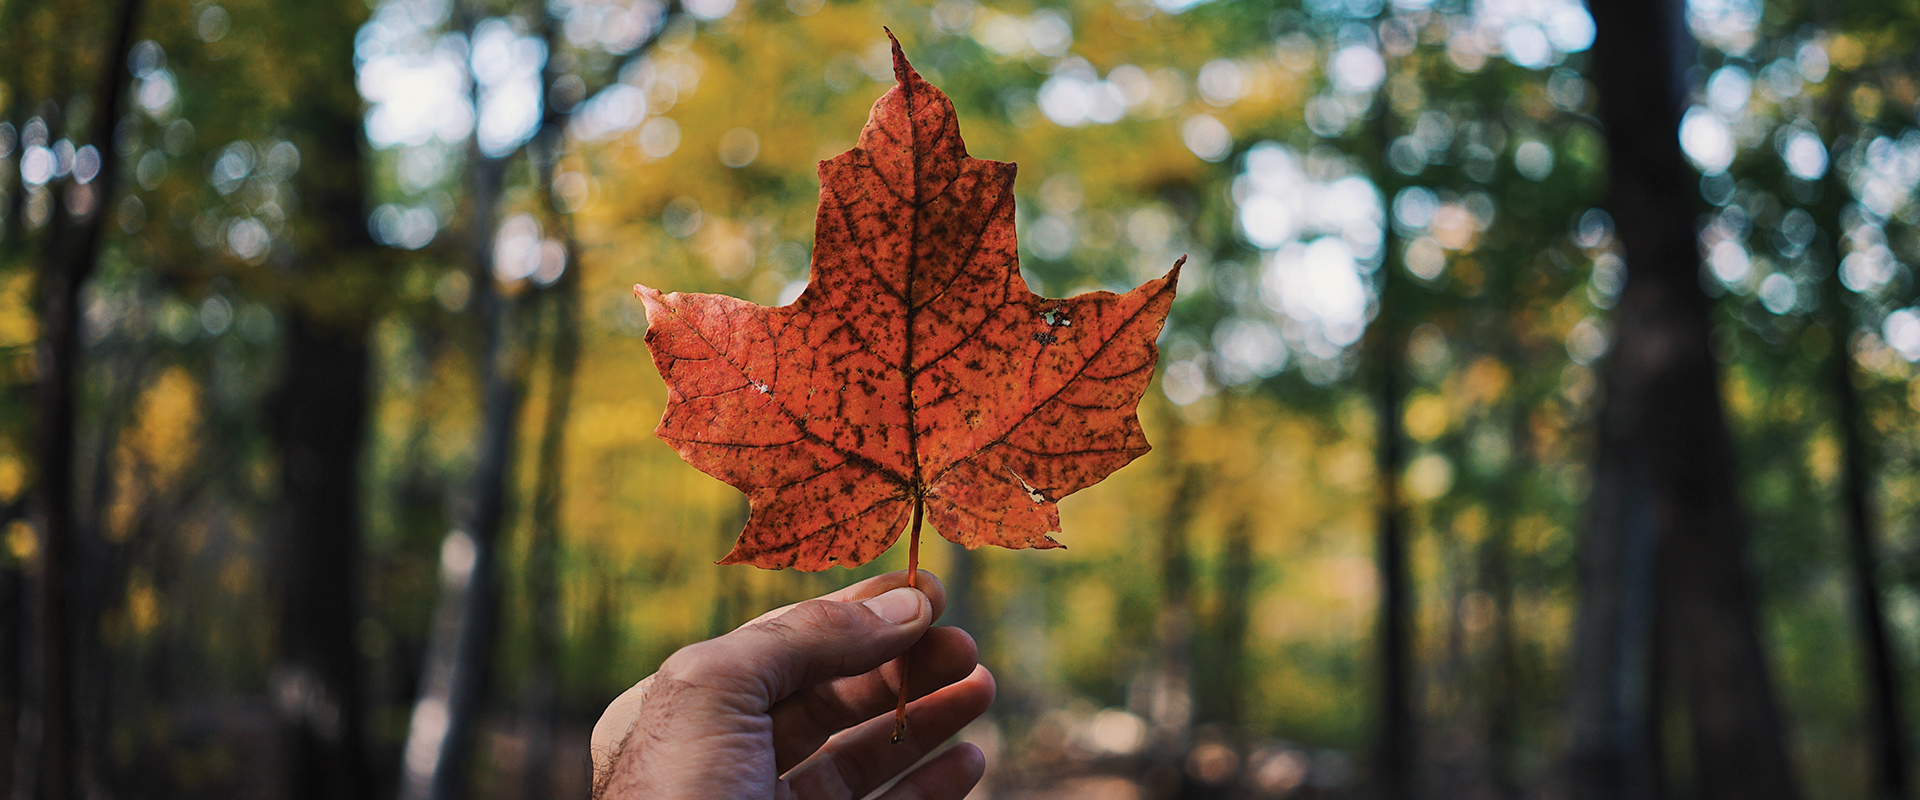 Photo of a hand, holding a maple leaf, in a forest